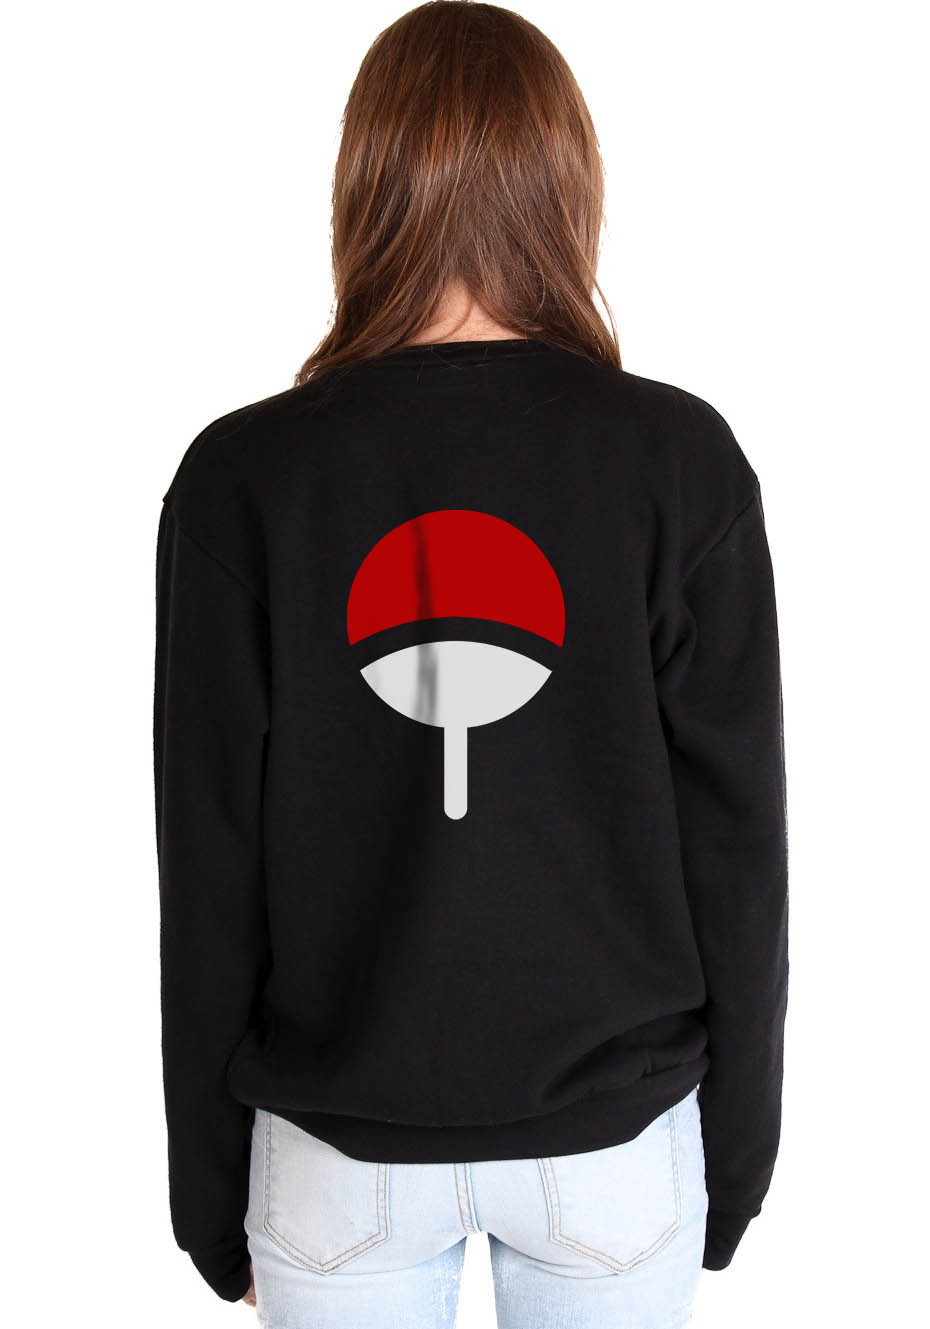 Uchiha Clan Symbol on back Naruto Unisex Crewneck Sweatshirt BLACK